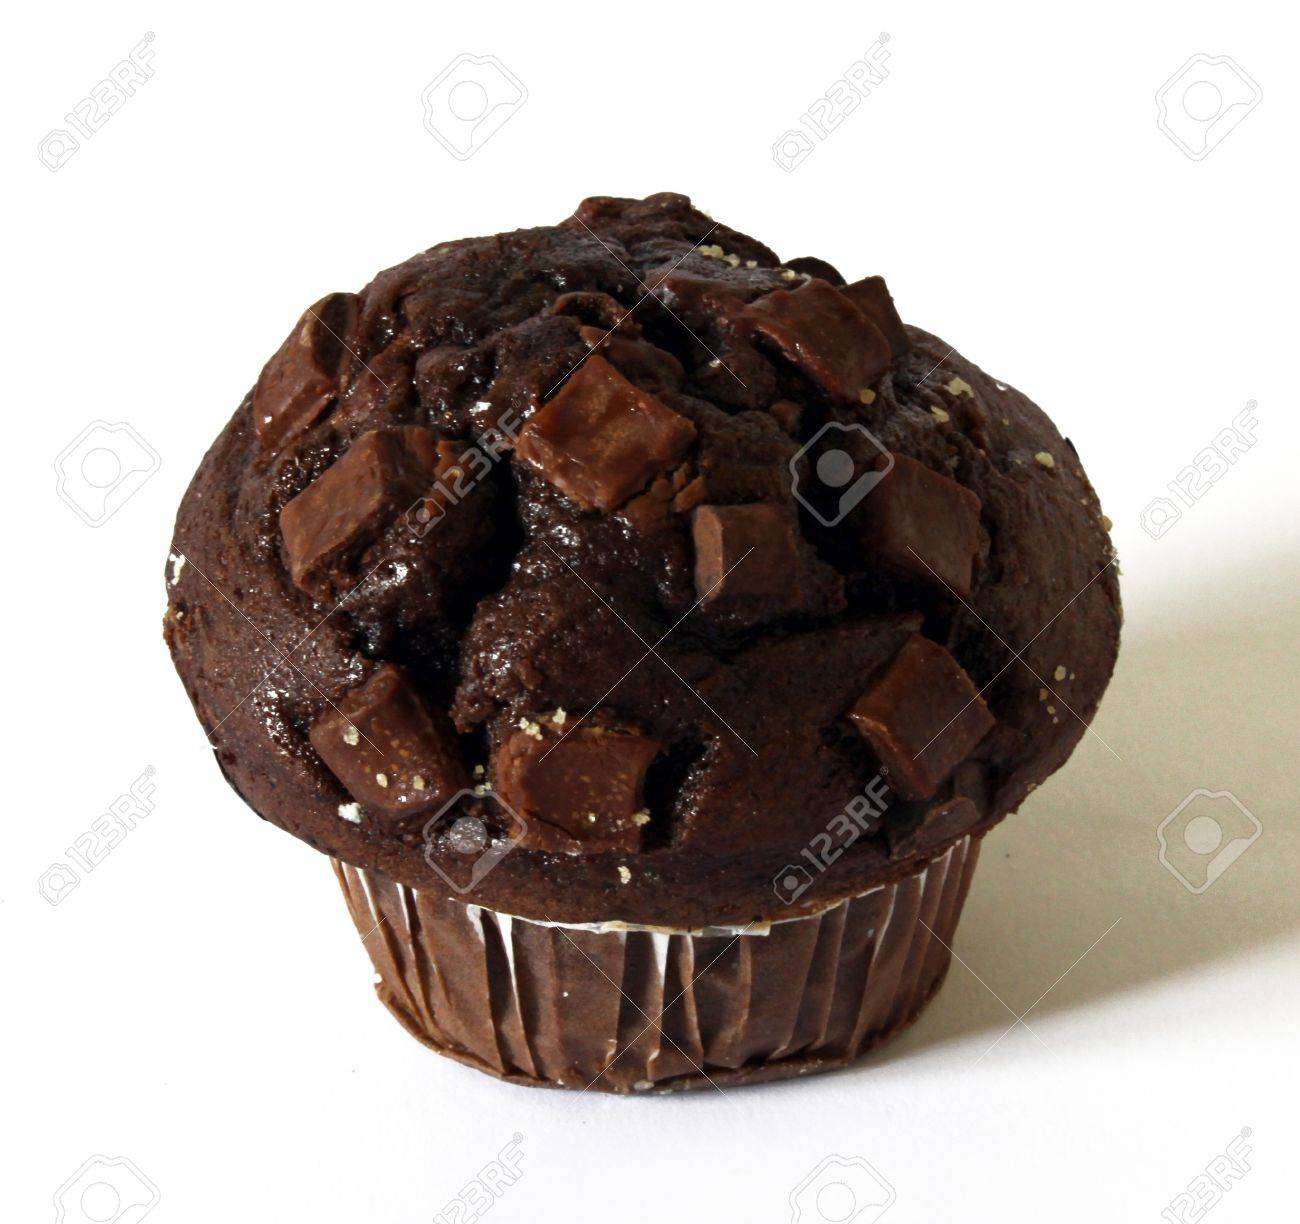 Big Chocolate Muffin On White Background Stock Photo, Picture And ...